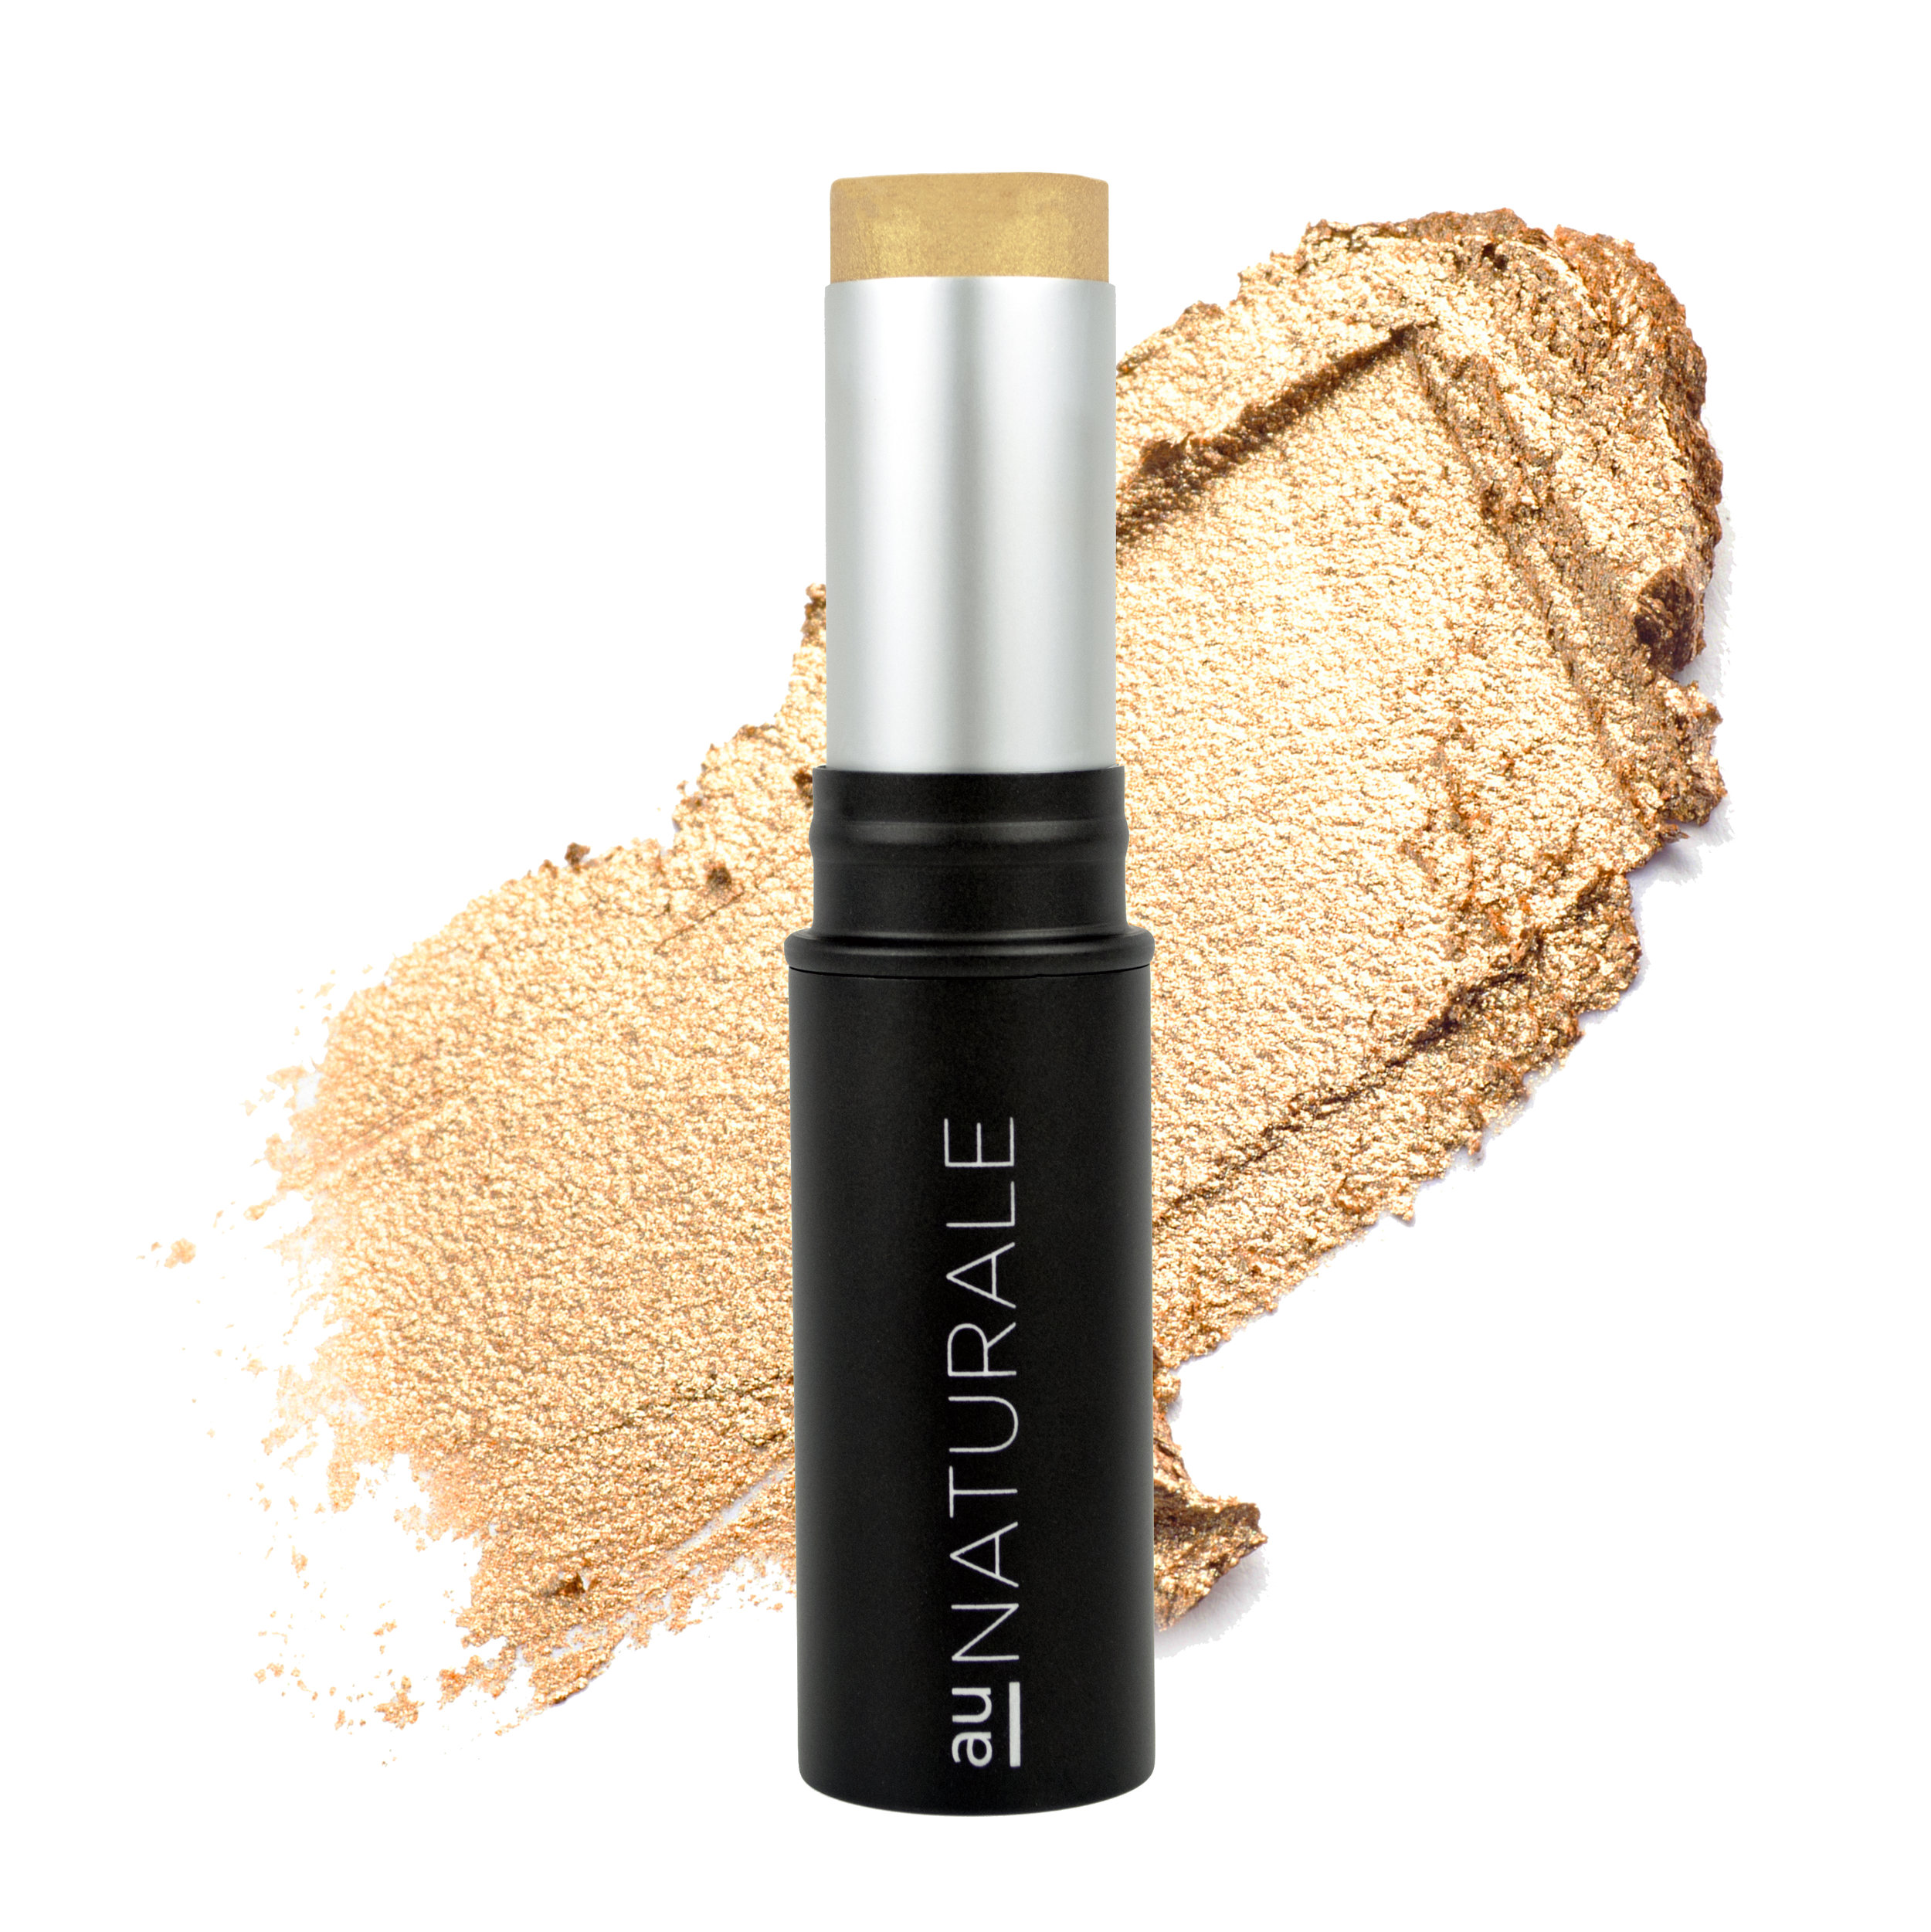 The OG All-Glowing Creme Highlighter